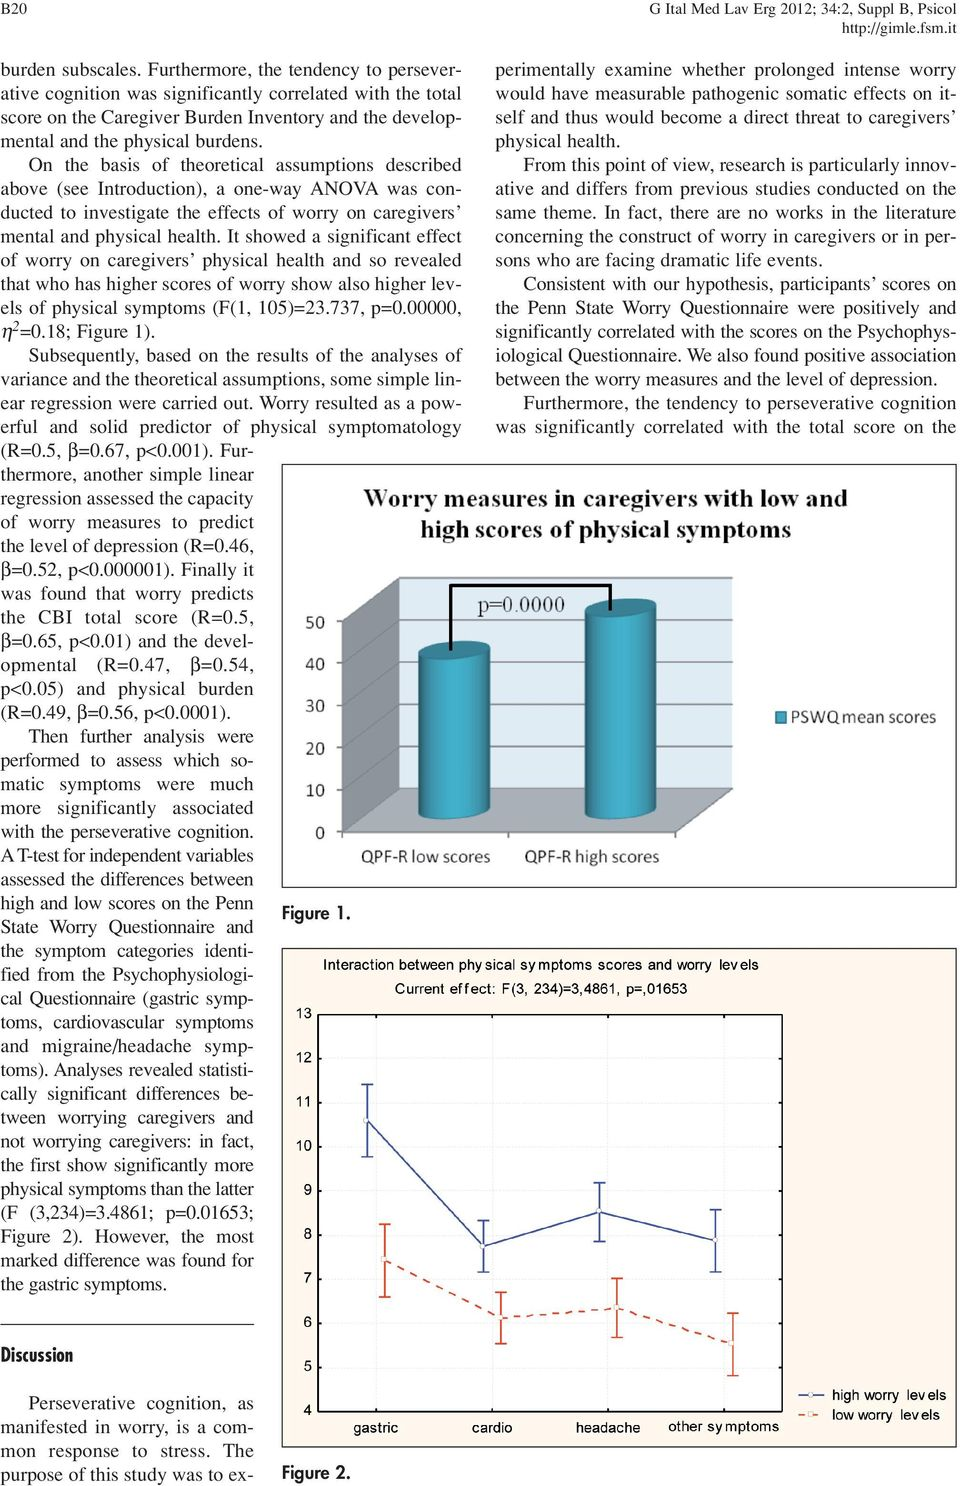 On the basis of theoretical assumptions described above (see Introduction), a one-way ANOVA was conducted to investigate the effects of worry on caregivers mental and physical health.